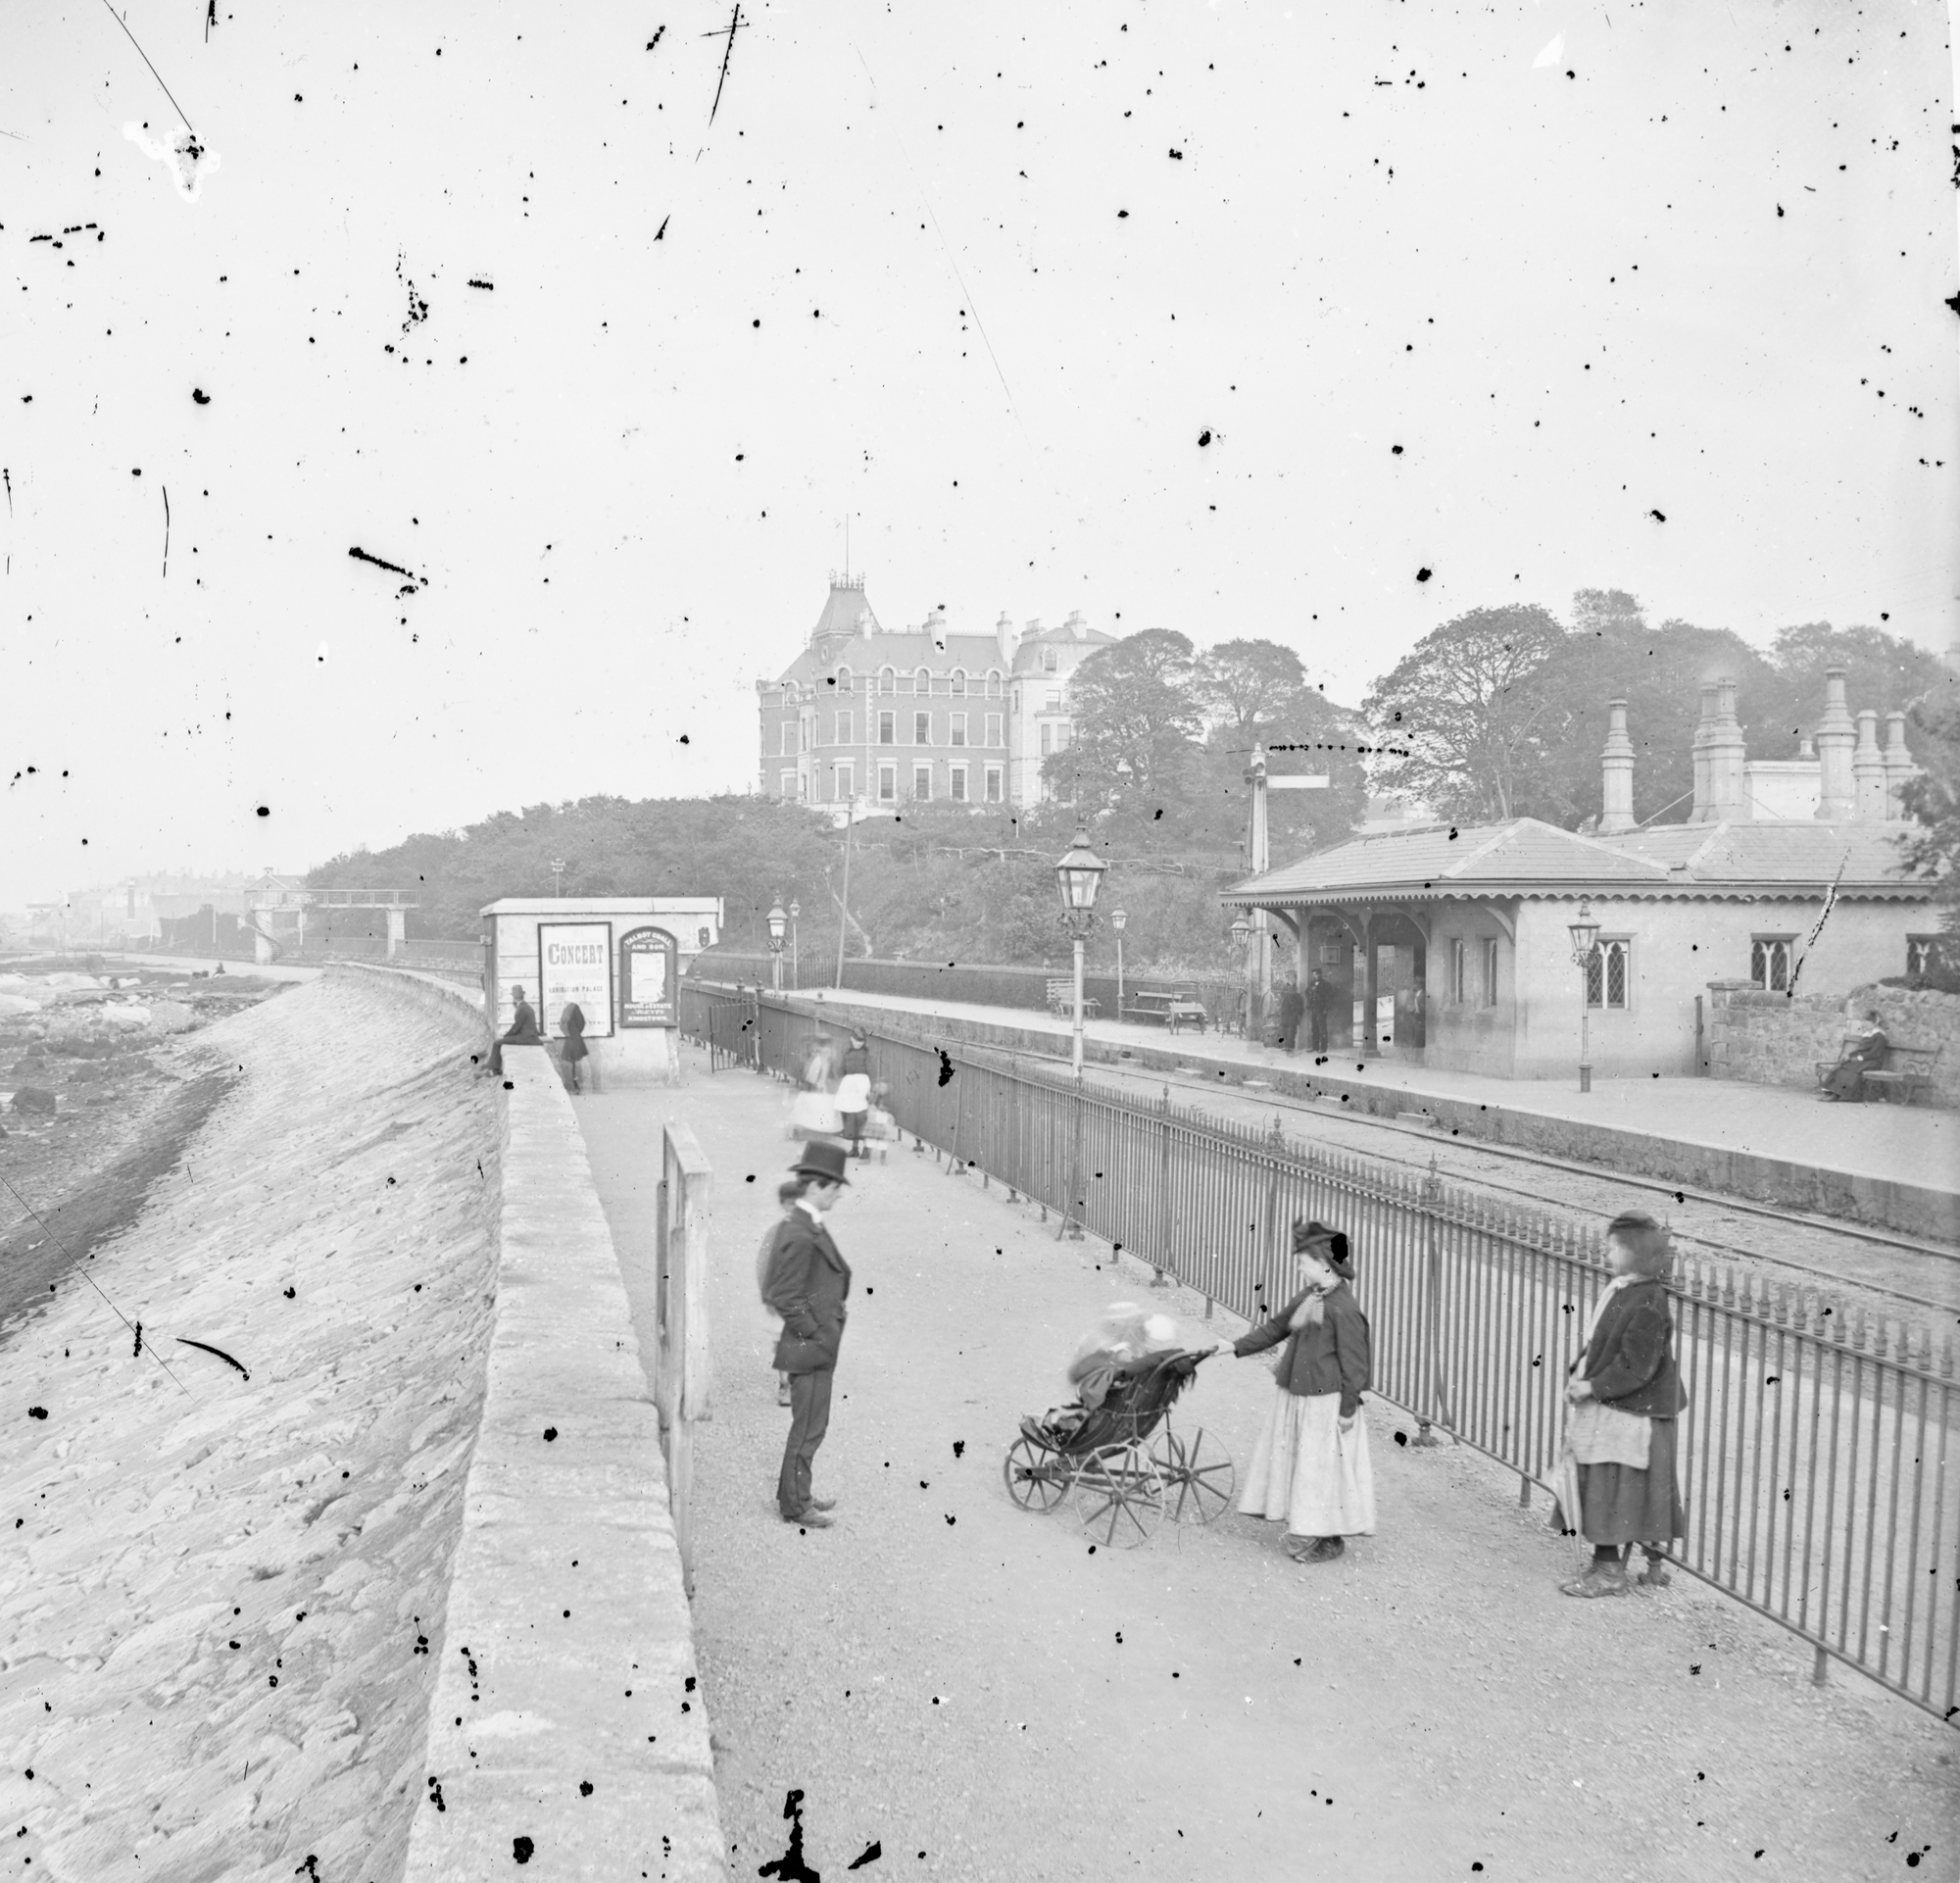 Salthill Railway Station and Hotel